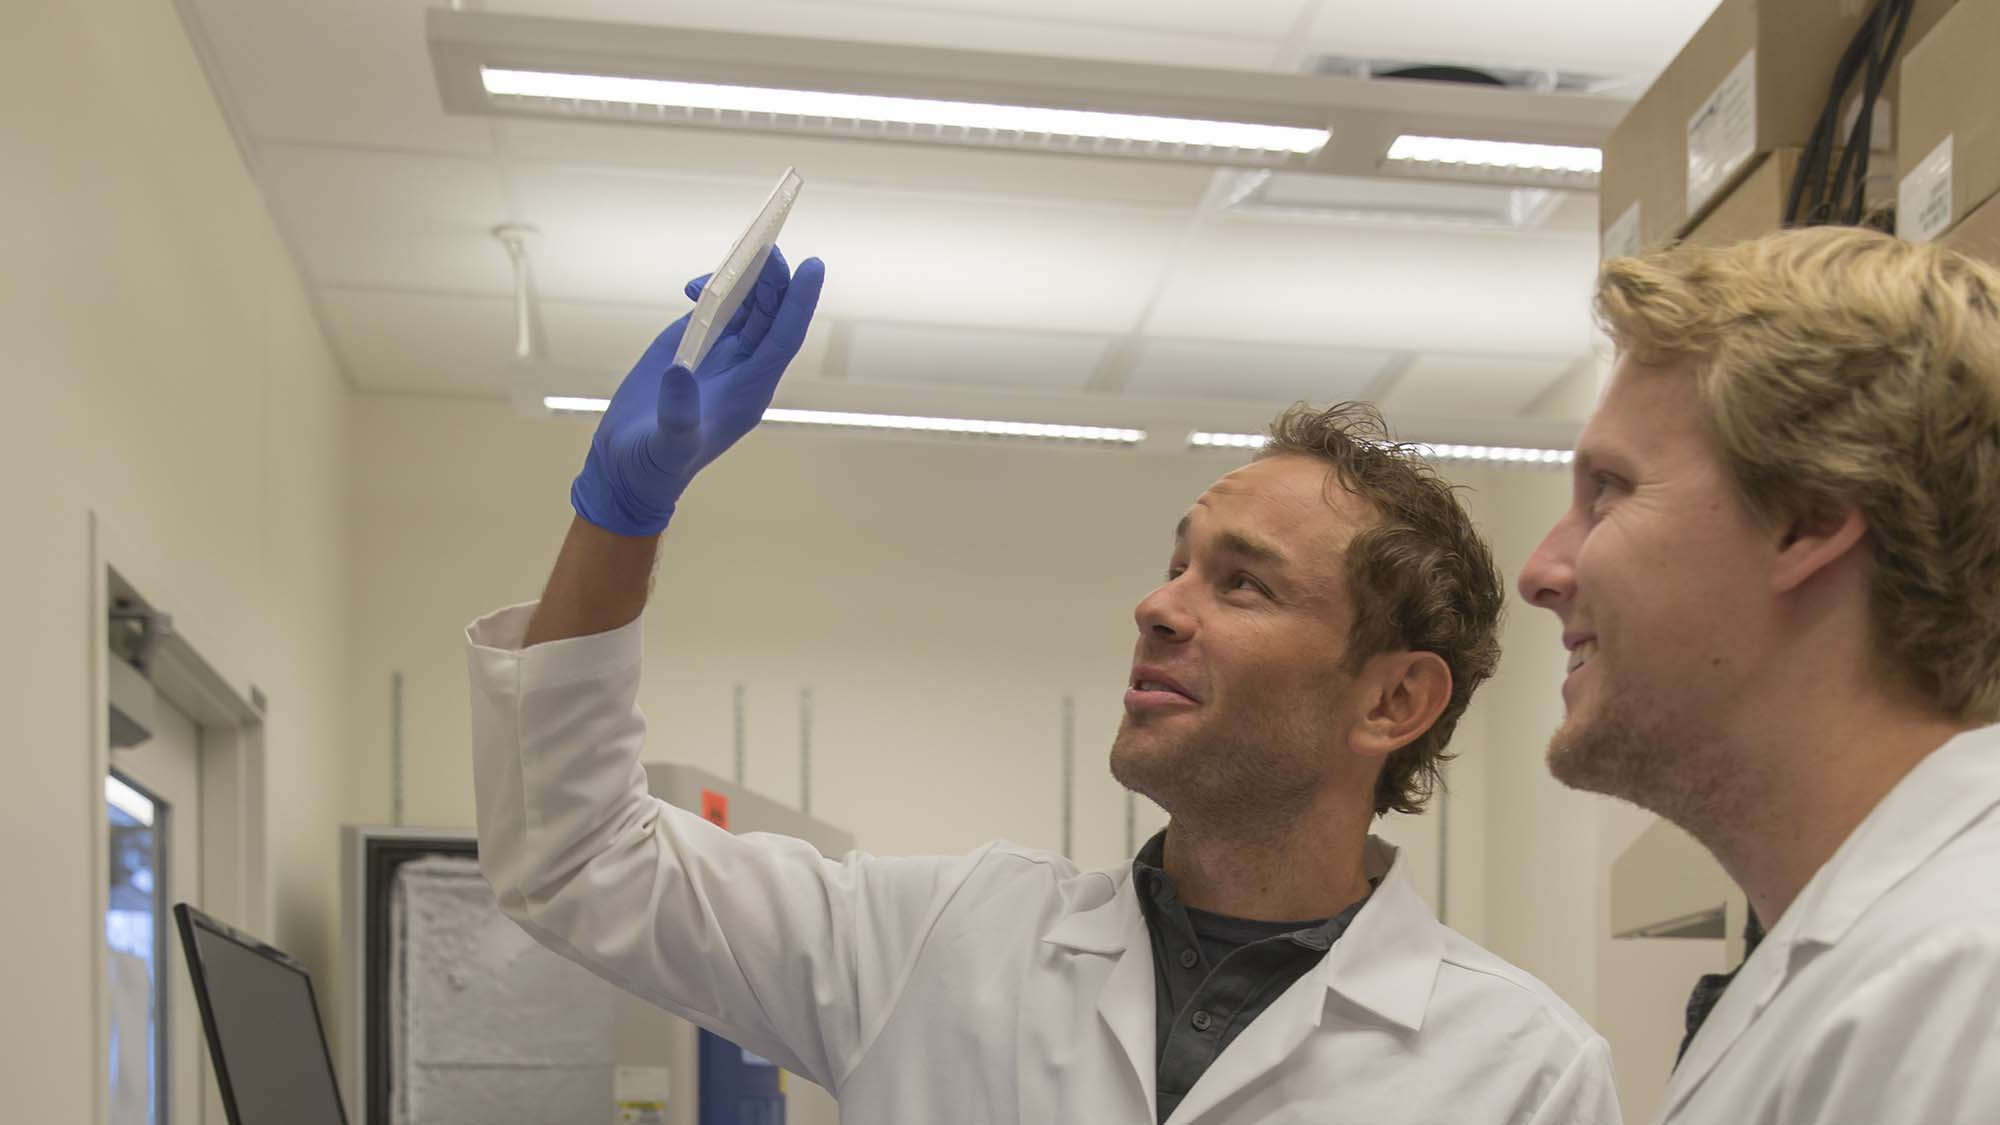 David Brafman (left) and Nick Brookhouser examining a plate used in an assay to characterize the identity of the hiPSC-derived neurons used in their research.